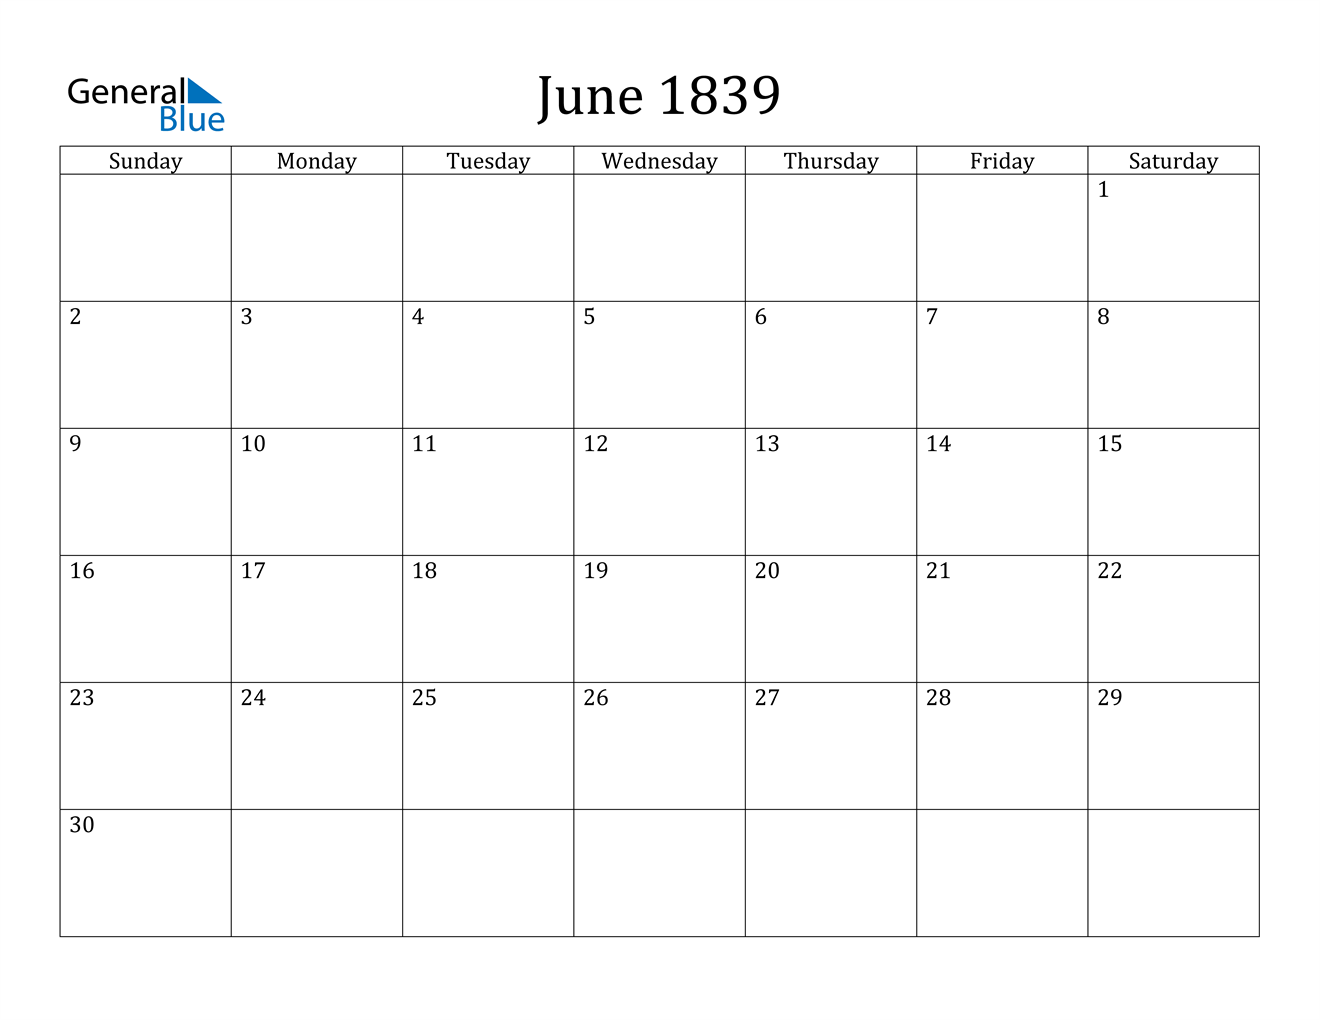 Image of June 1839 Calendar